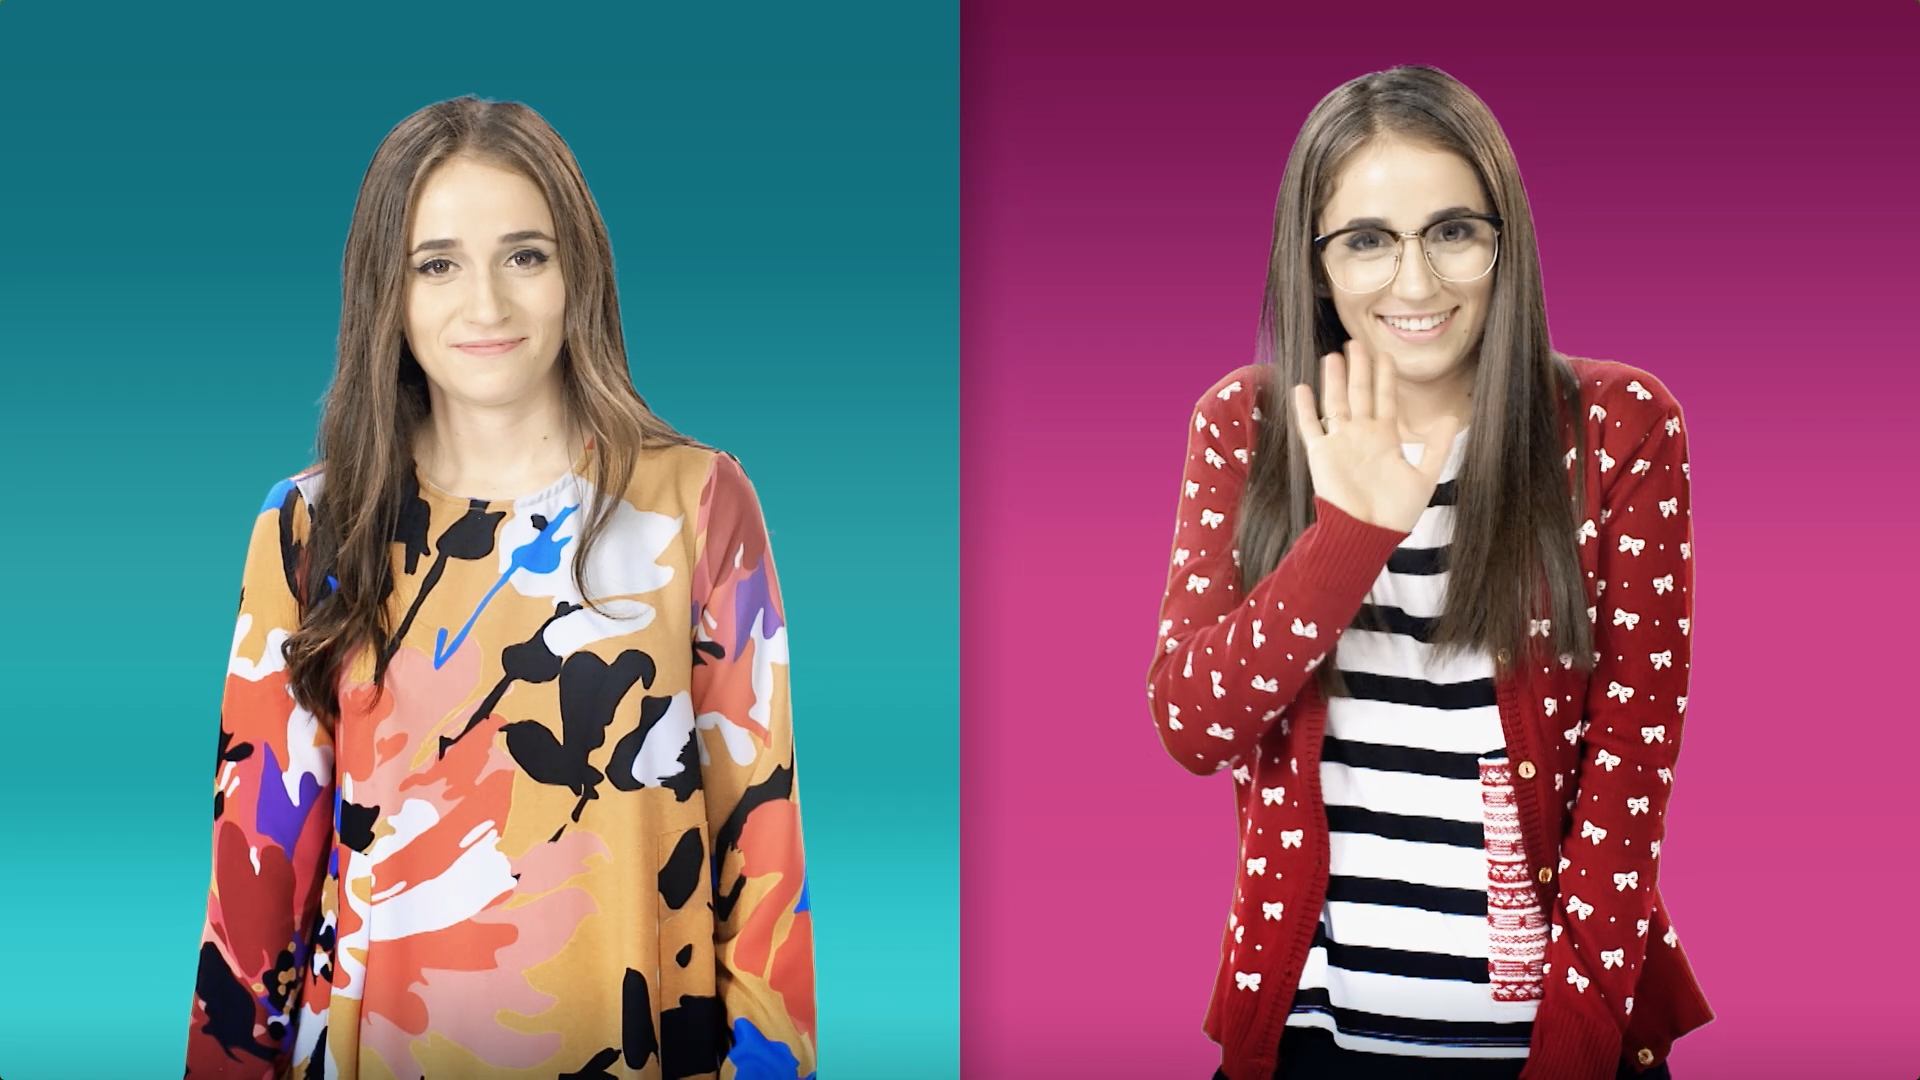 Who is Who? Carolina vs. Nina - Soy Luna